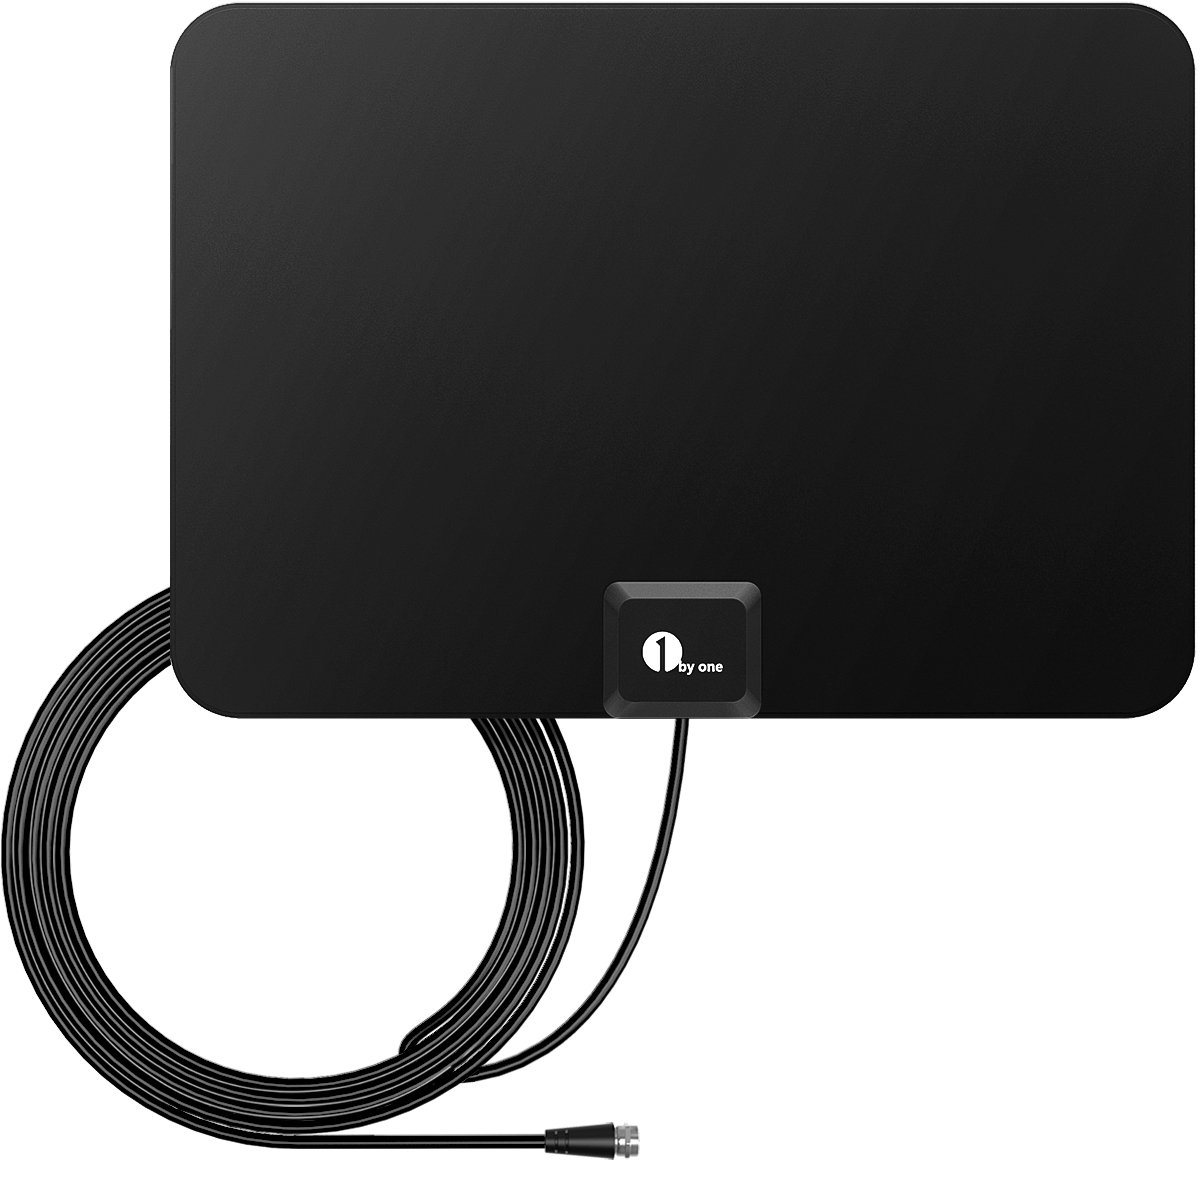 1byone HDTV Antenna - 35 Miles Range with 10 Feet High Performance Coaxial Cable OUS00-0187